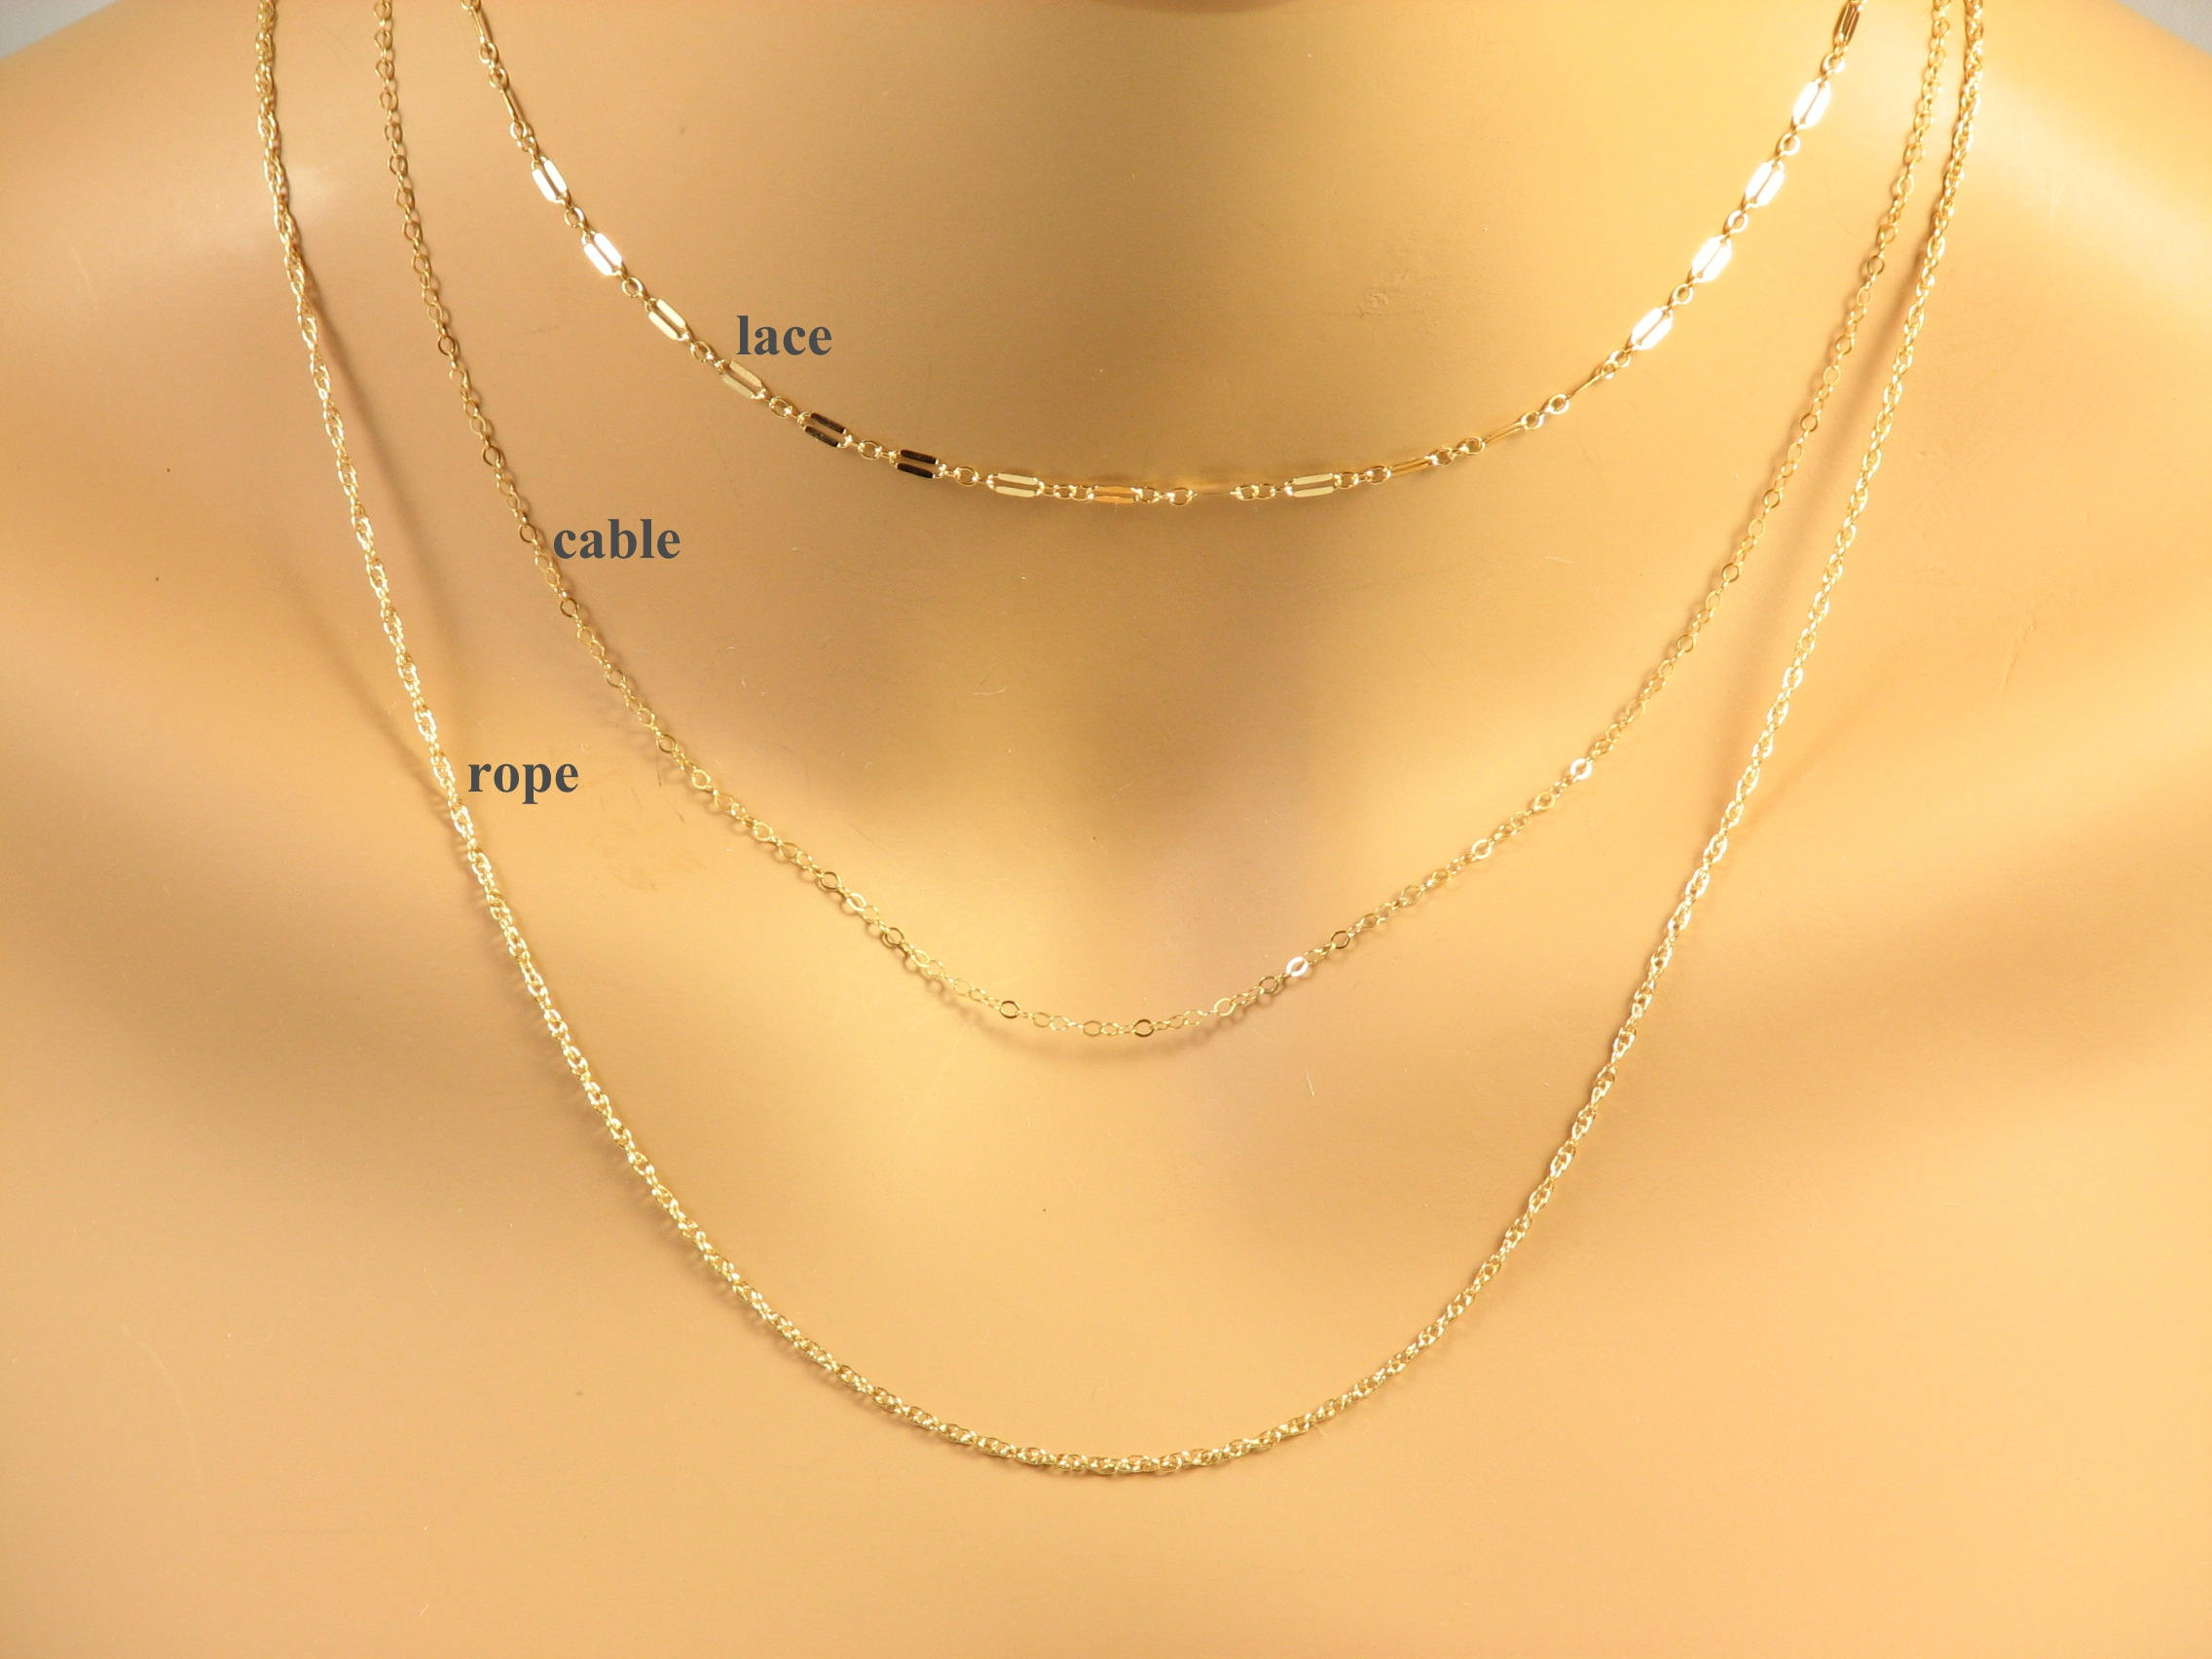 Dainty Chain Necklace, Lace Chain, Cable Chain, Rope Chain, Long Gold  Chain, Long Silver Chain, Understated Jewelry Regarding Recent Classic Cable Chain Necklaces (View 13 of 25)